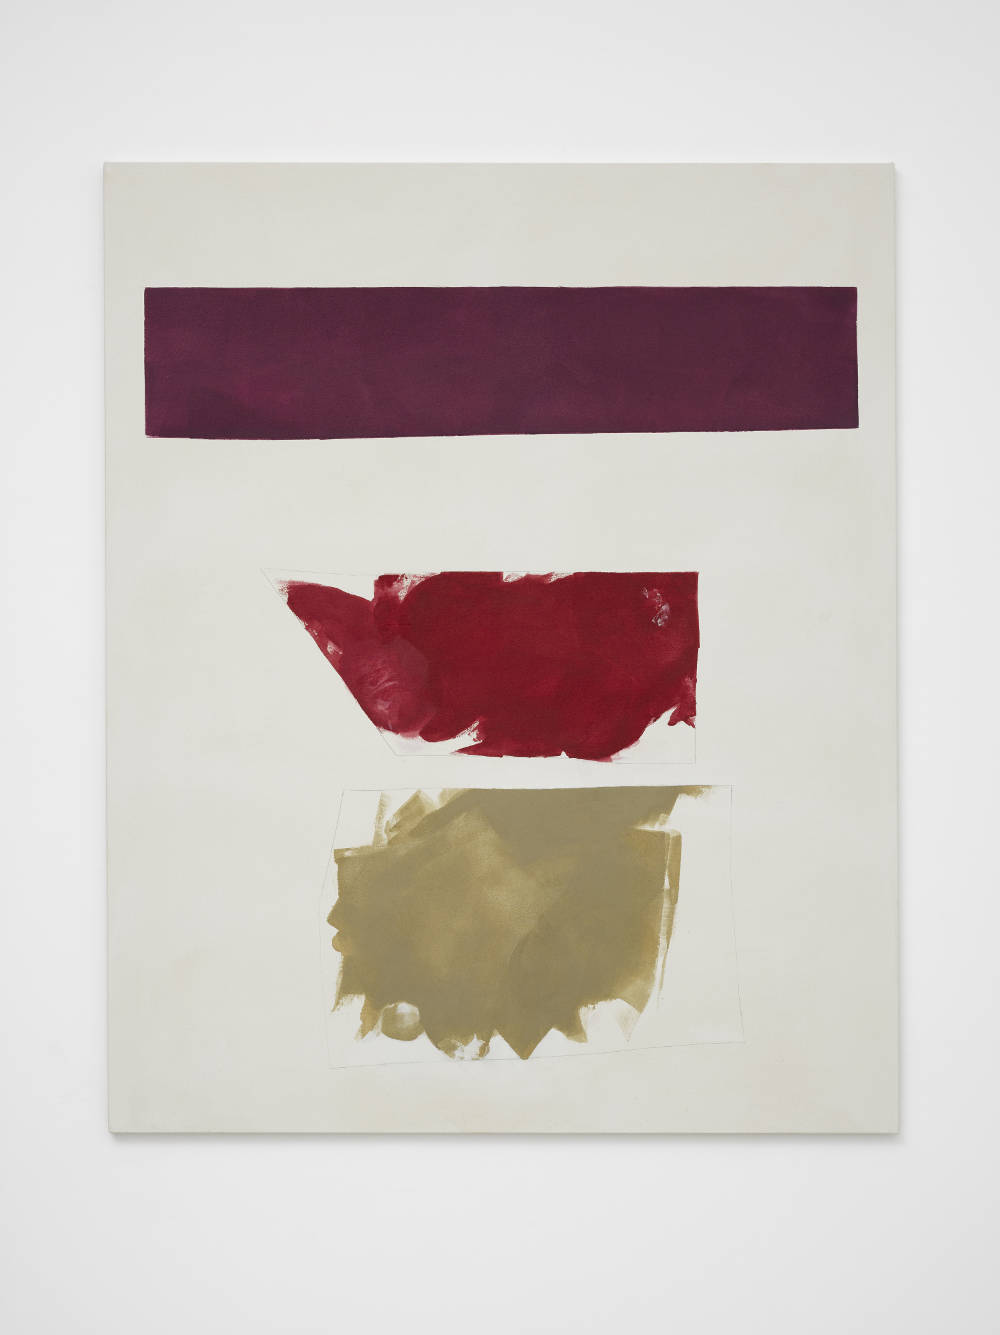 Peter Joseph, Deep Red, Scarlet and Ochre, 2016. Acrylic on cotton duck 54 x 44 inches (137.2 x 111.8 cm) © Peter Joseph; Courtesy Lisson Gallery. Photo by Jack Hems